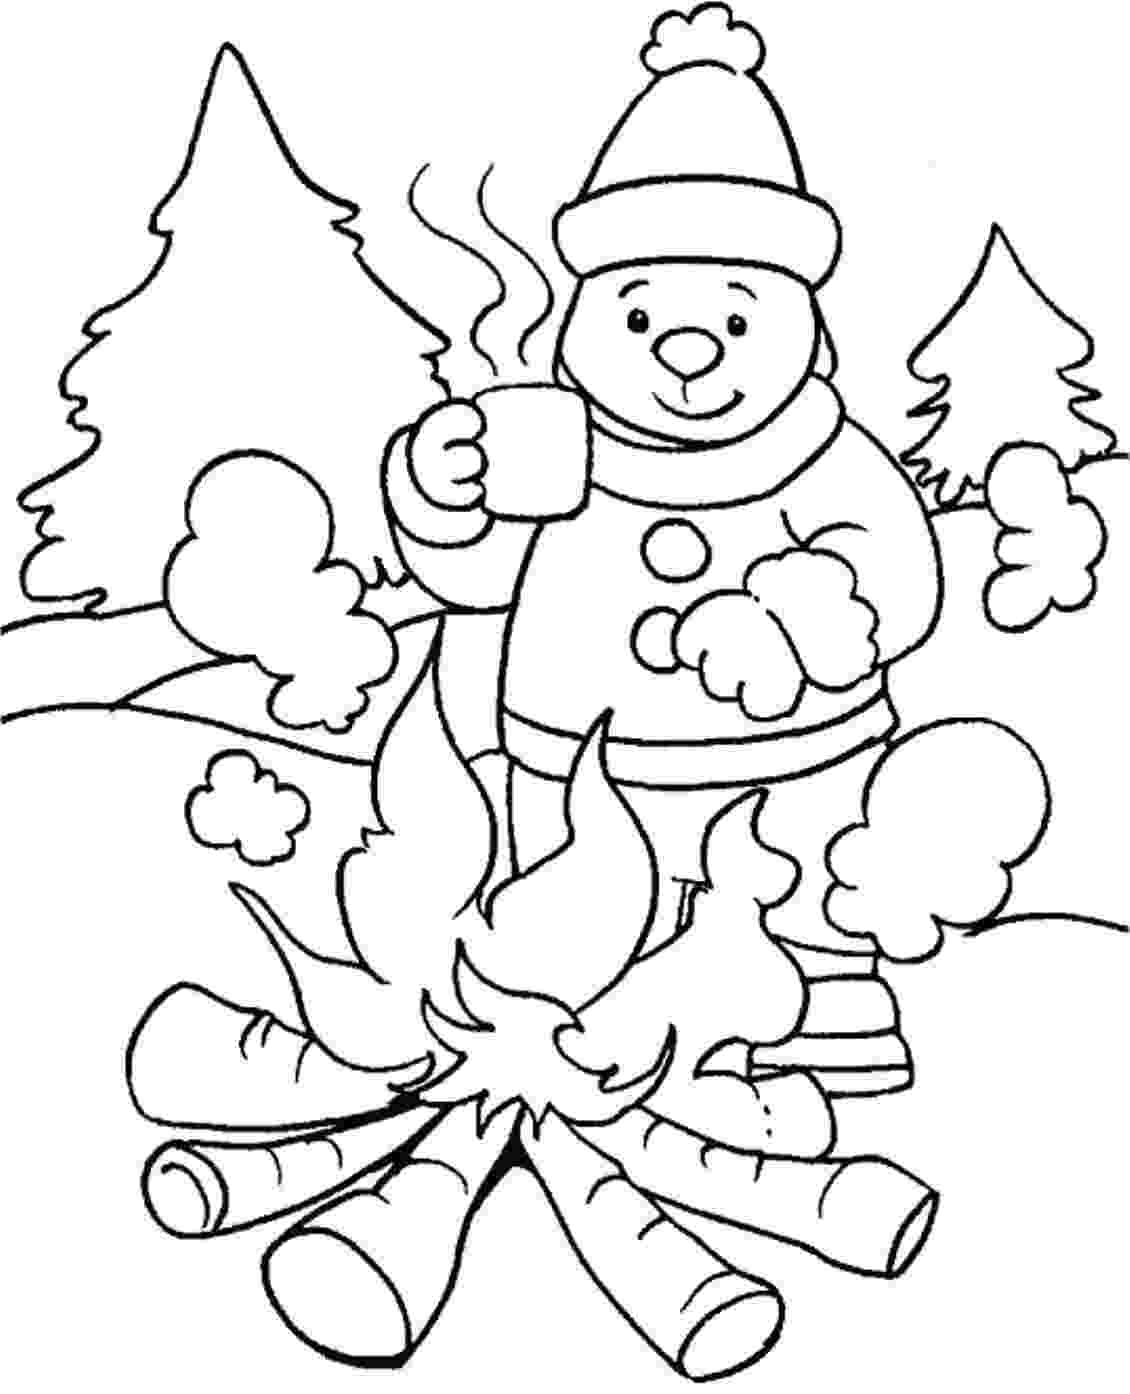 winter printable coloring pages free free printable winter coloring pages for kids winter printable coloring free pages